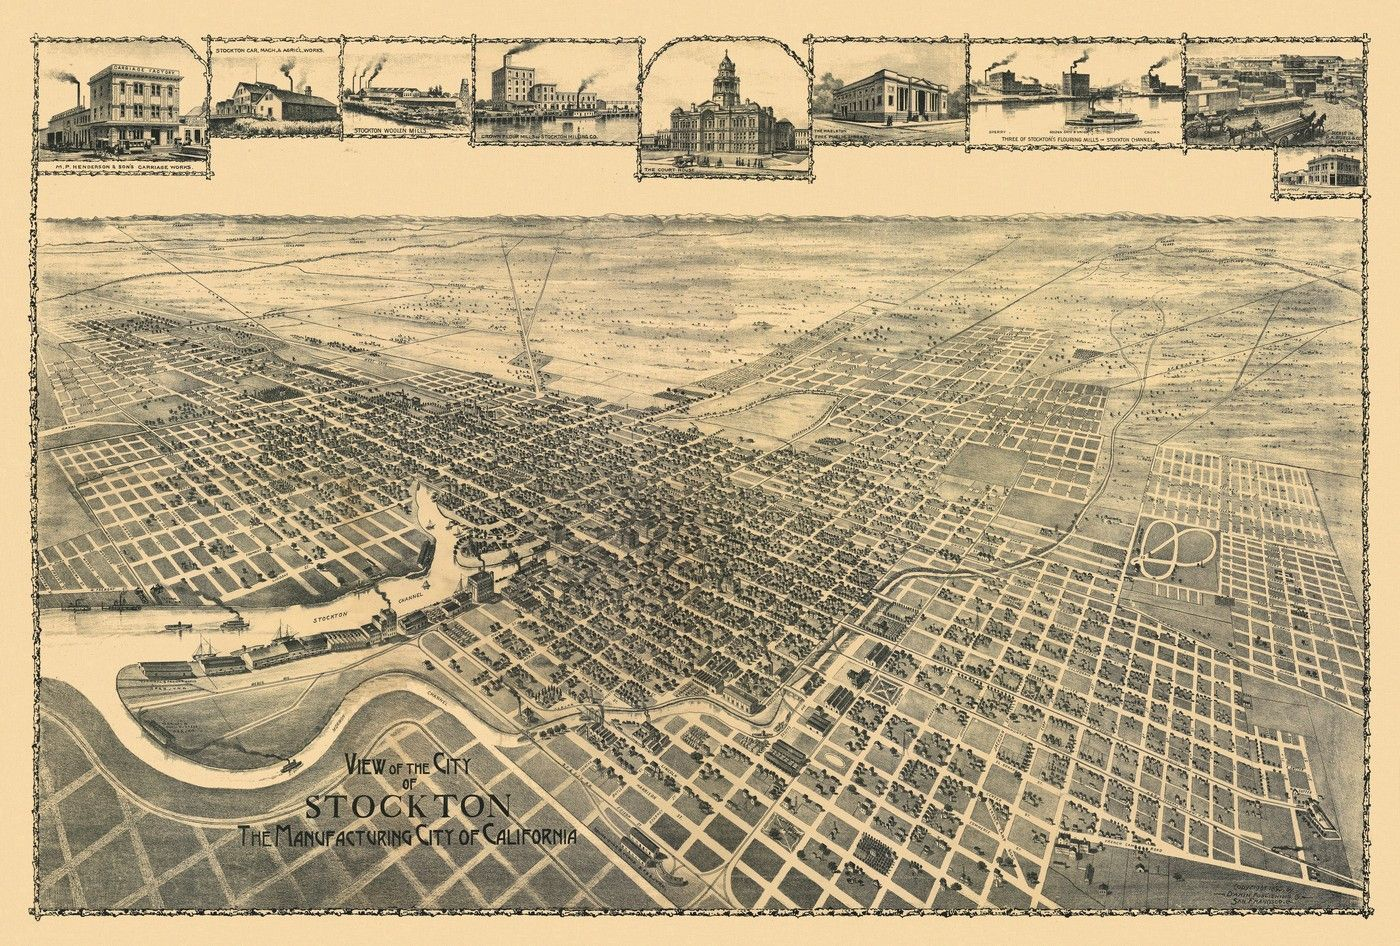 View of city of Stockton the Manufacturing City of ...